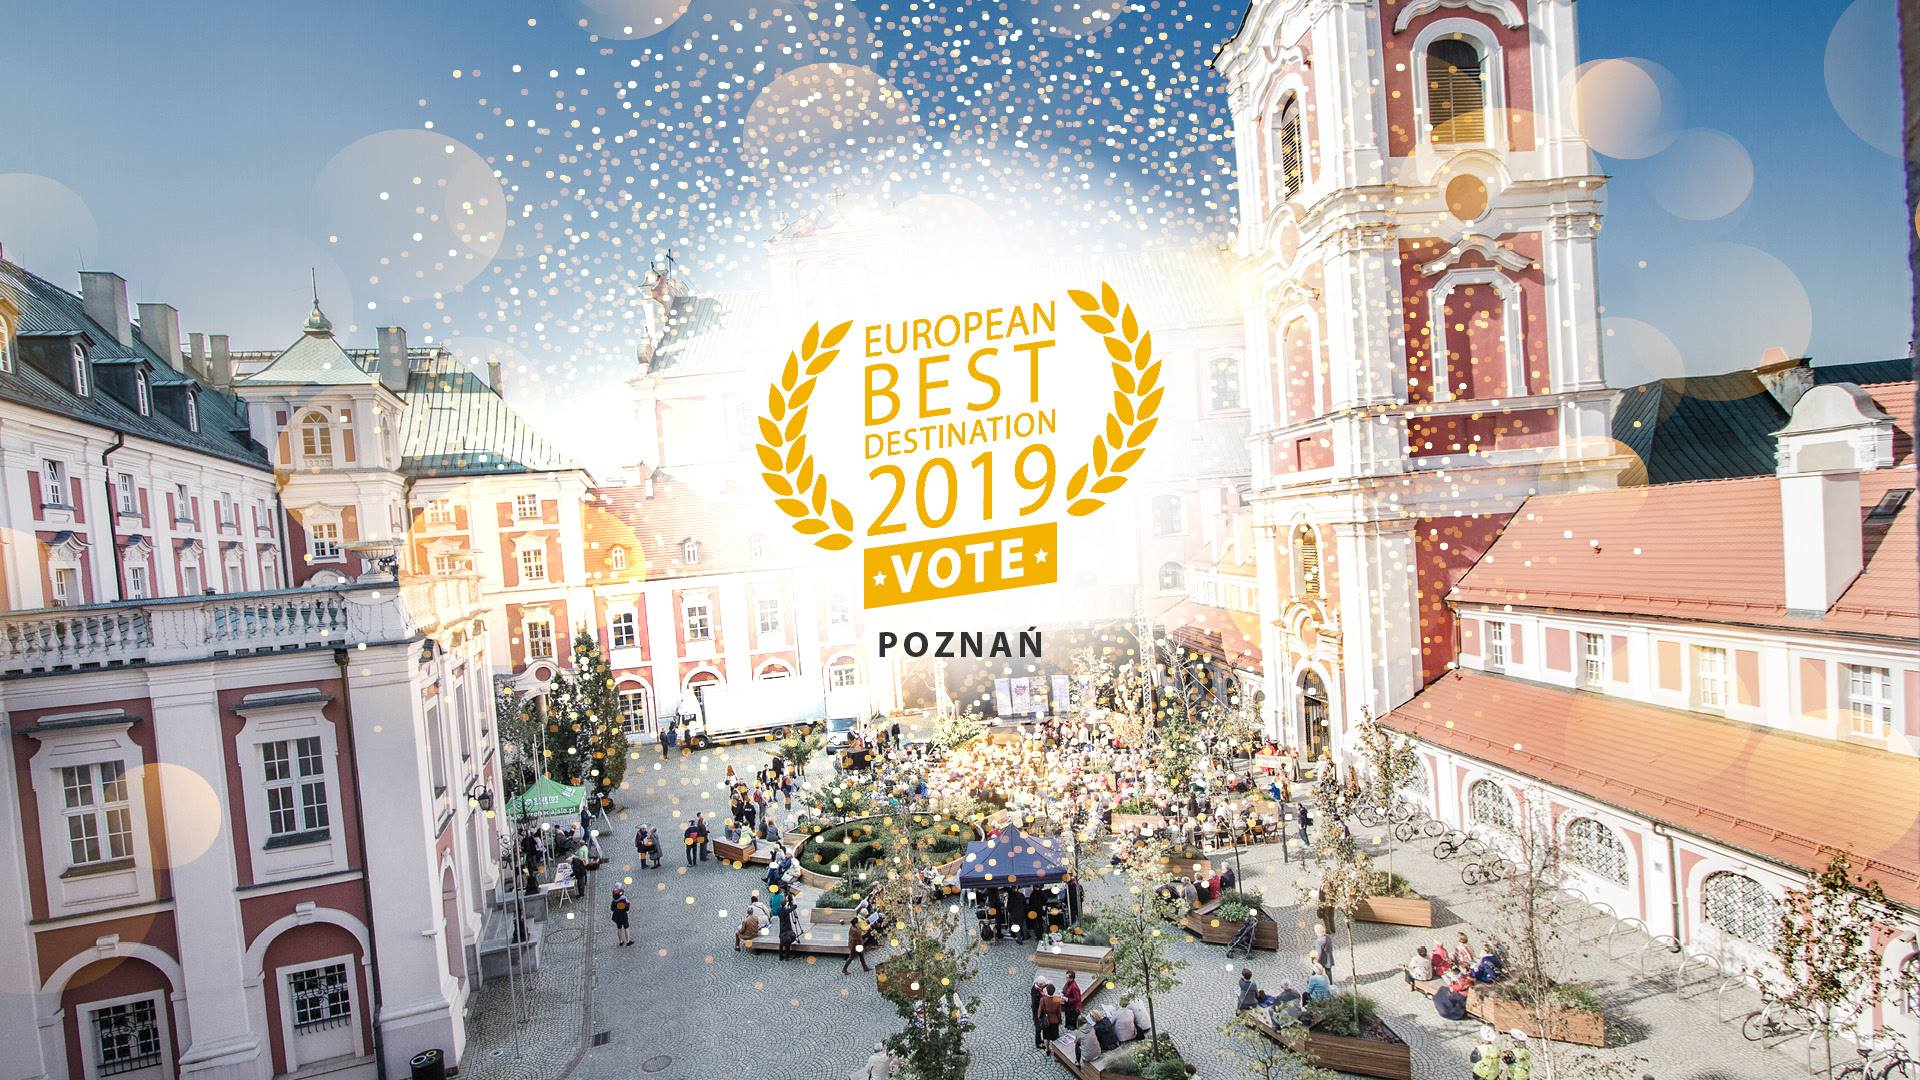 European Best Destination - poznan.pl